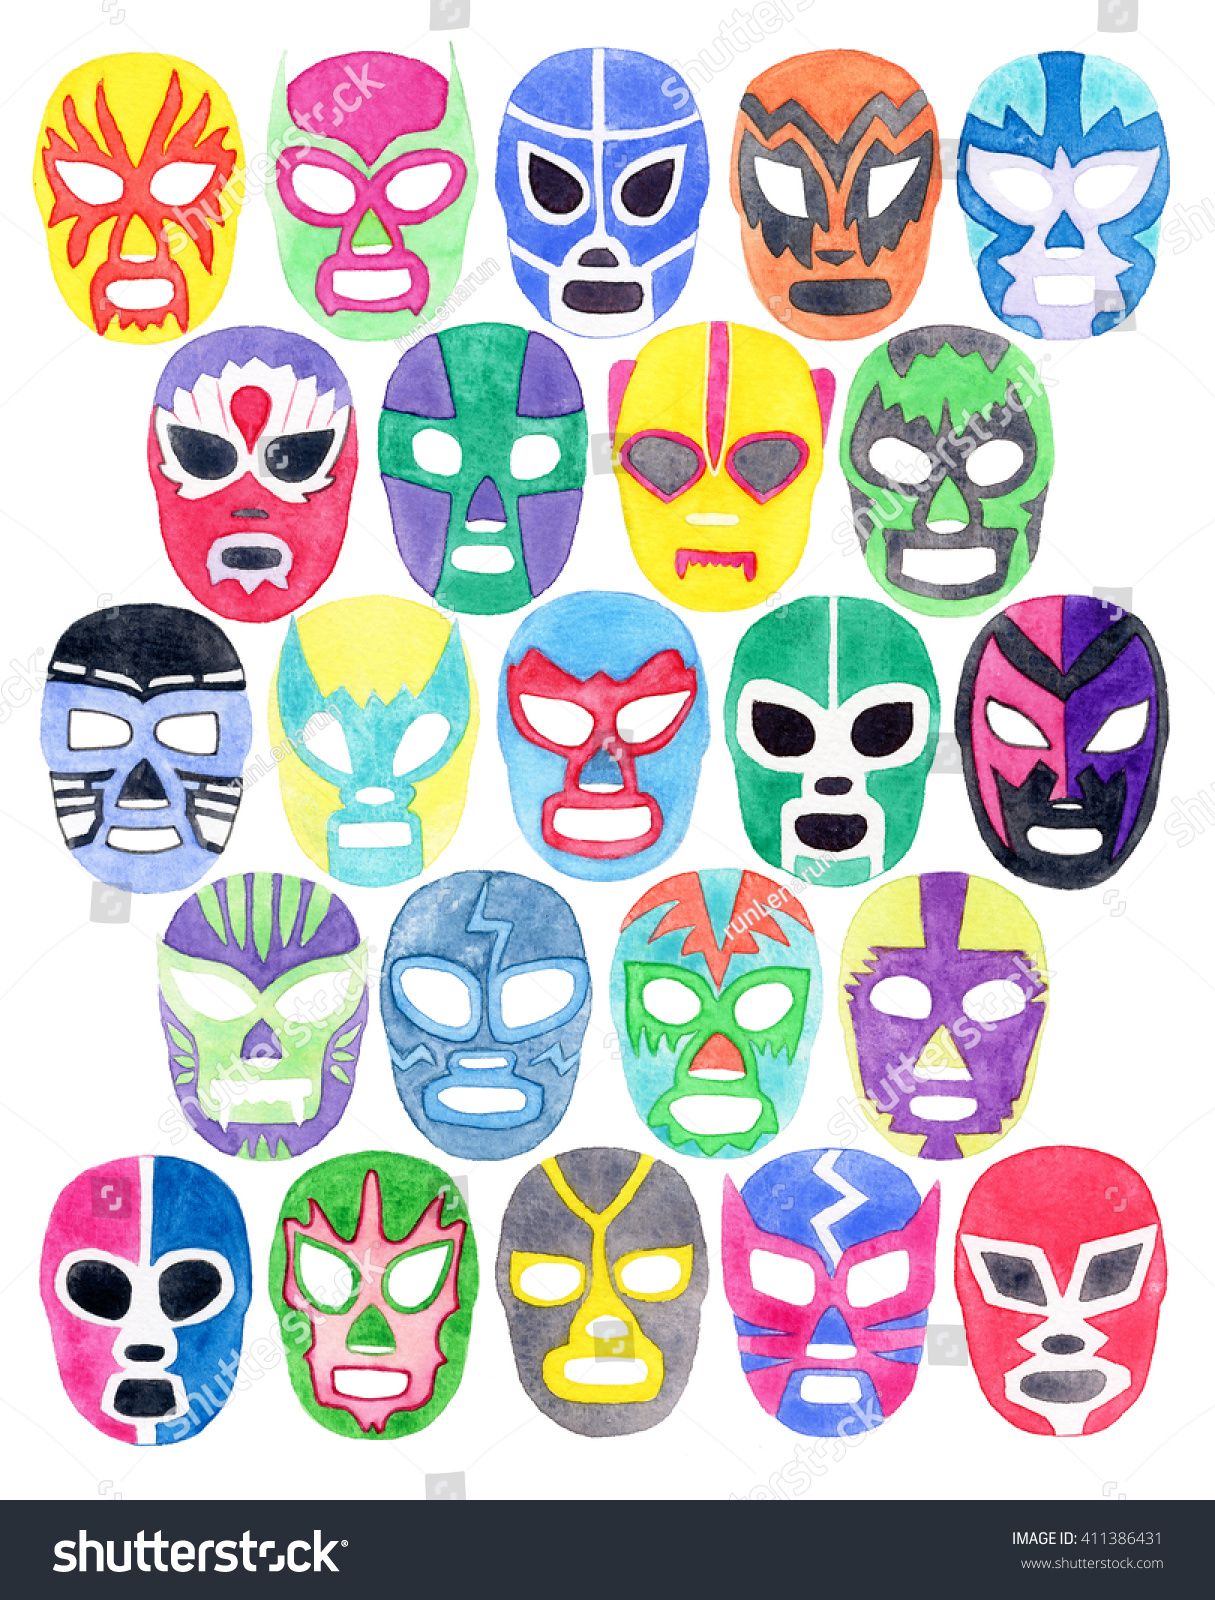 Lucha Libre Real Luchador Or Fighter Mask Set Hand Drawn Lucha Libre Free